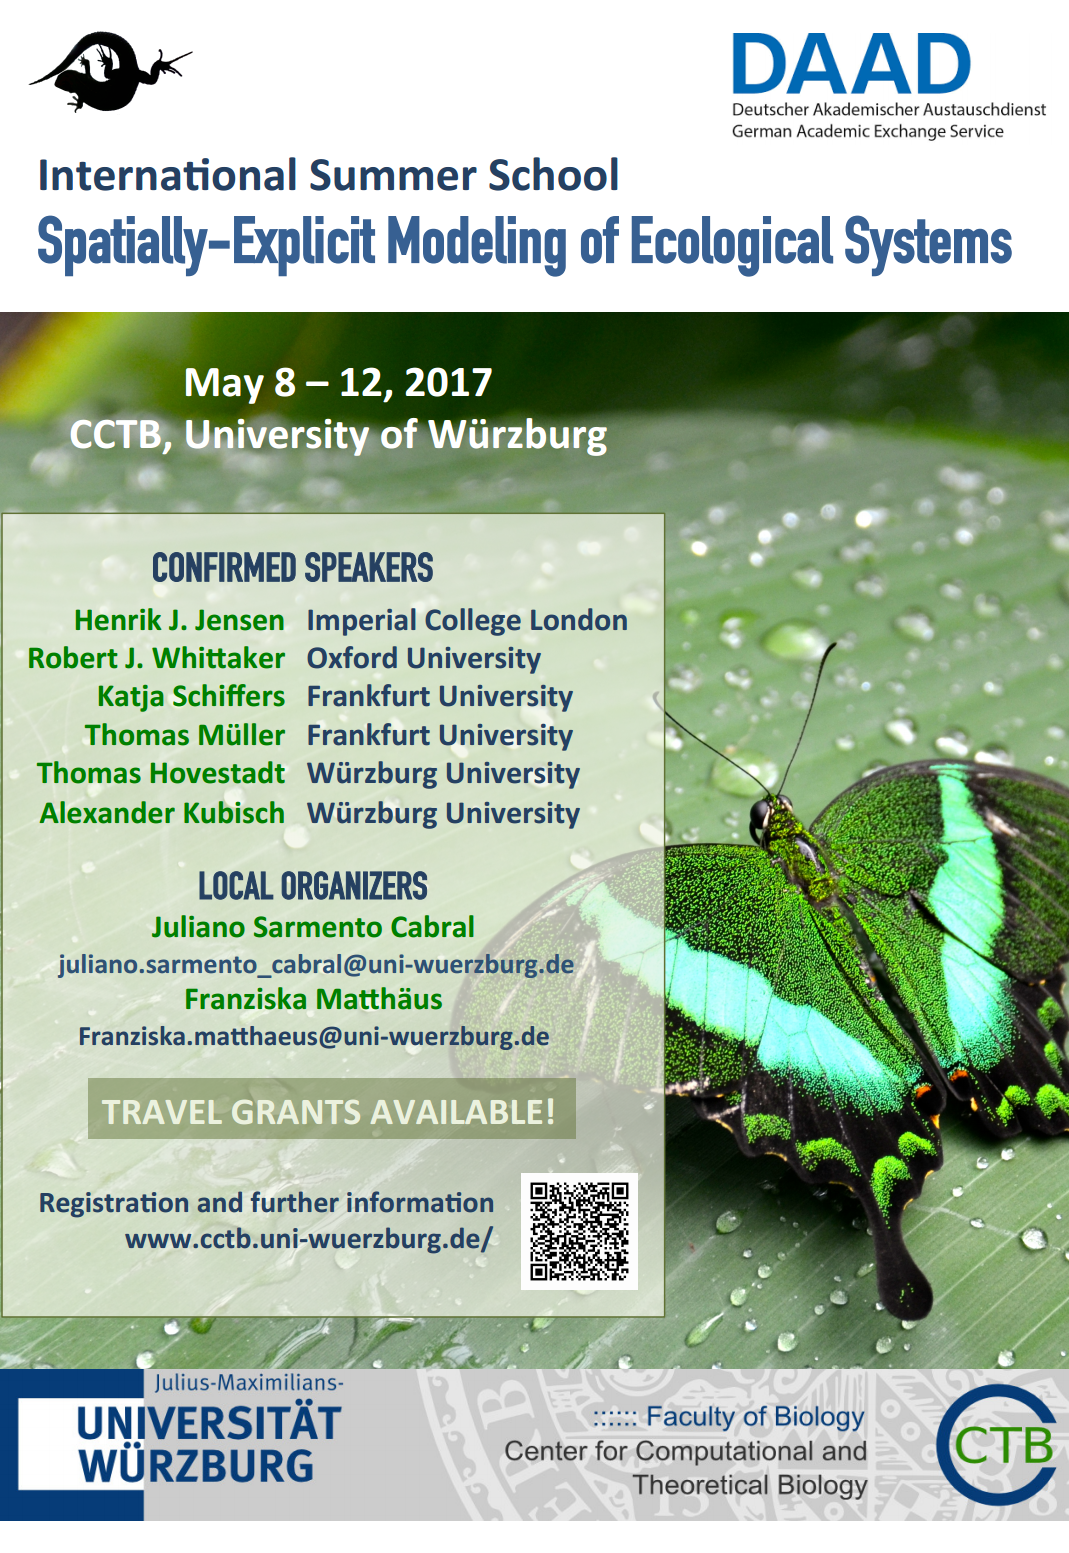 International Summer School - Spatially-Explicit Modeling of Ecological Systems